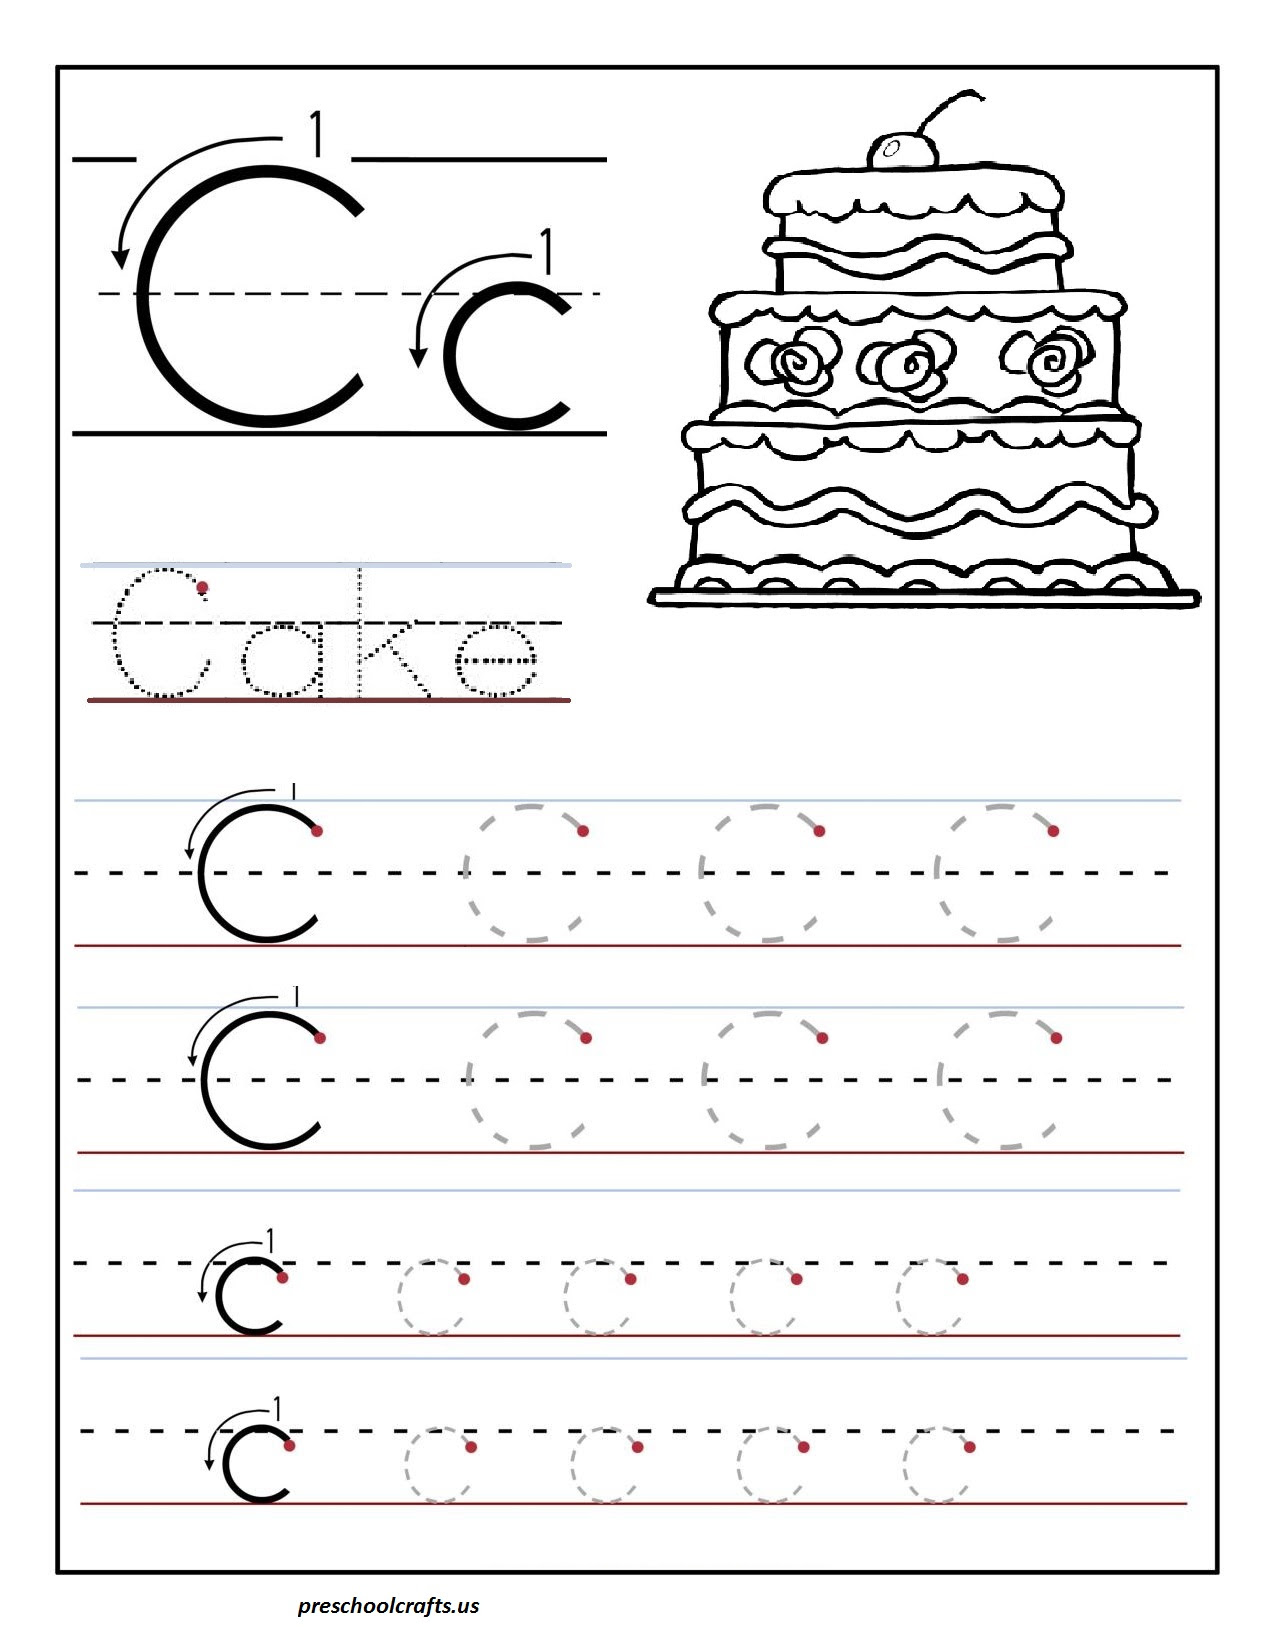 Printable  letter  C  tracing  worksheets  for  preschool  Preschool Crafts